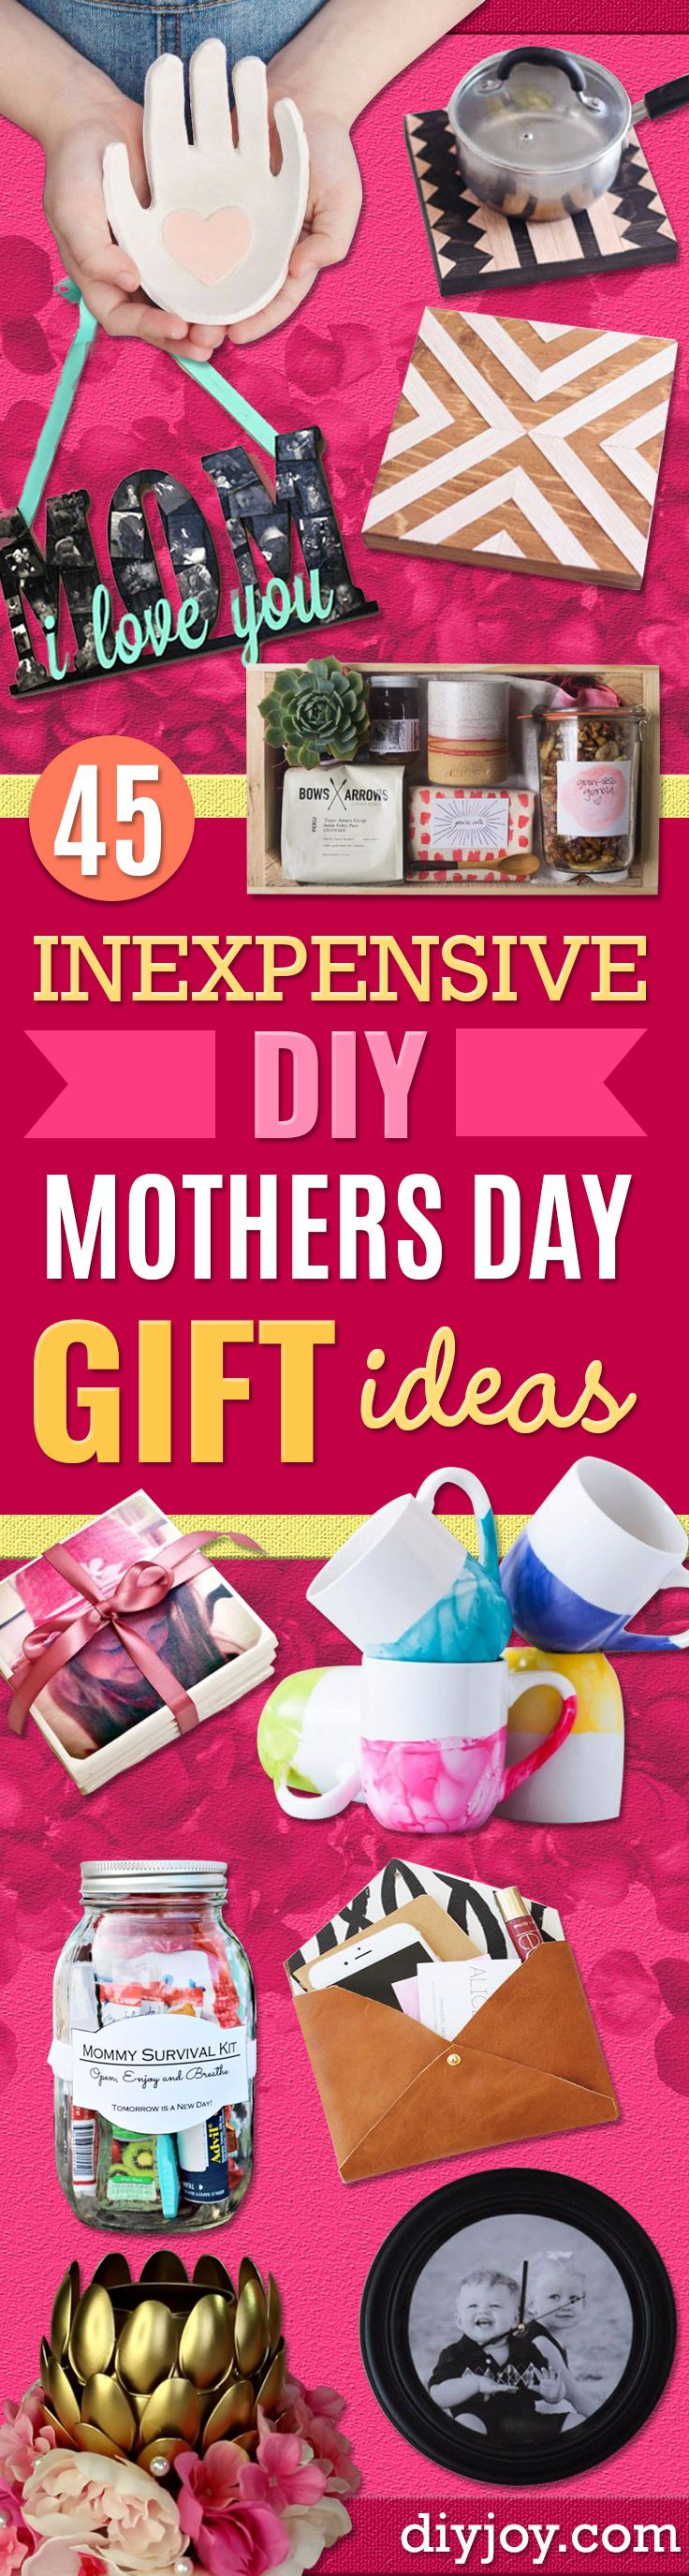 45 inexpensive diy mothers day gift ideas homemade Cheap mothers day gift ideas to make